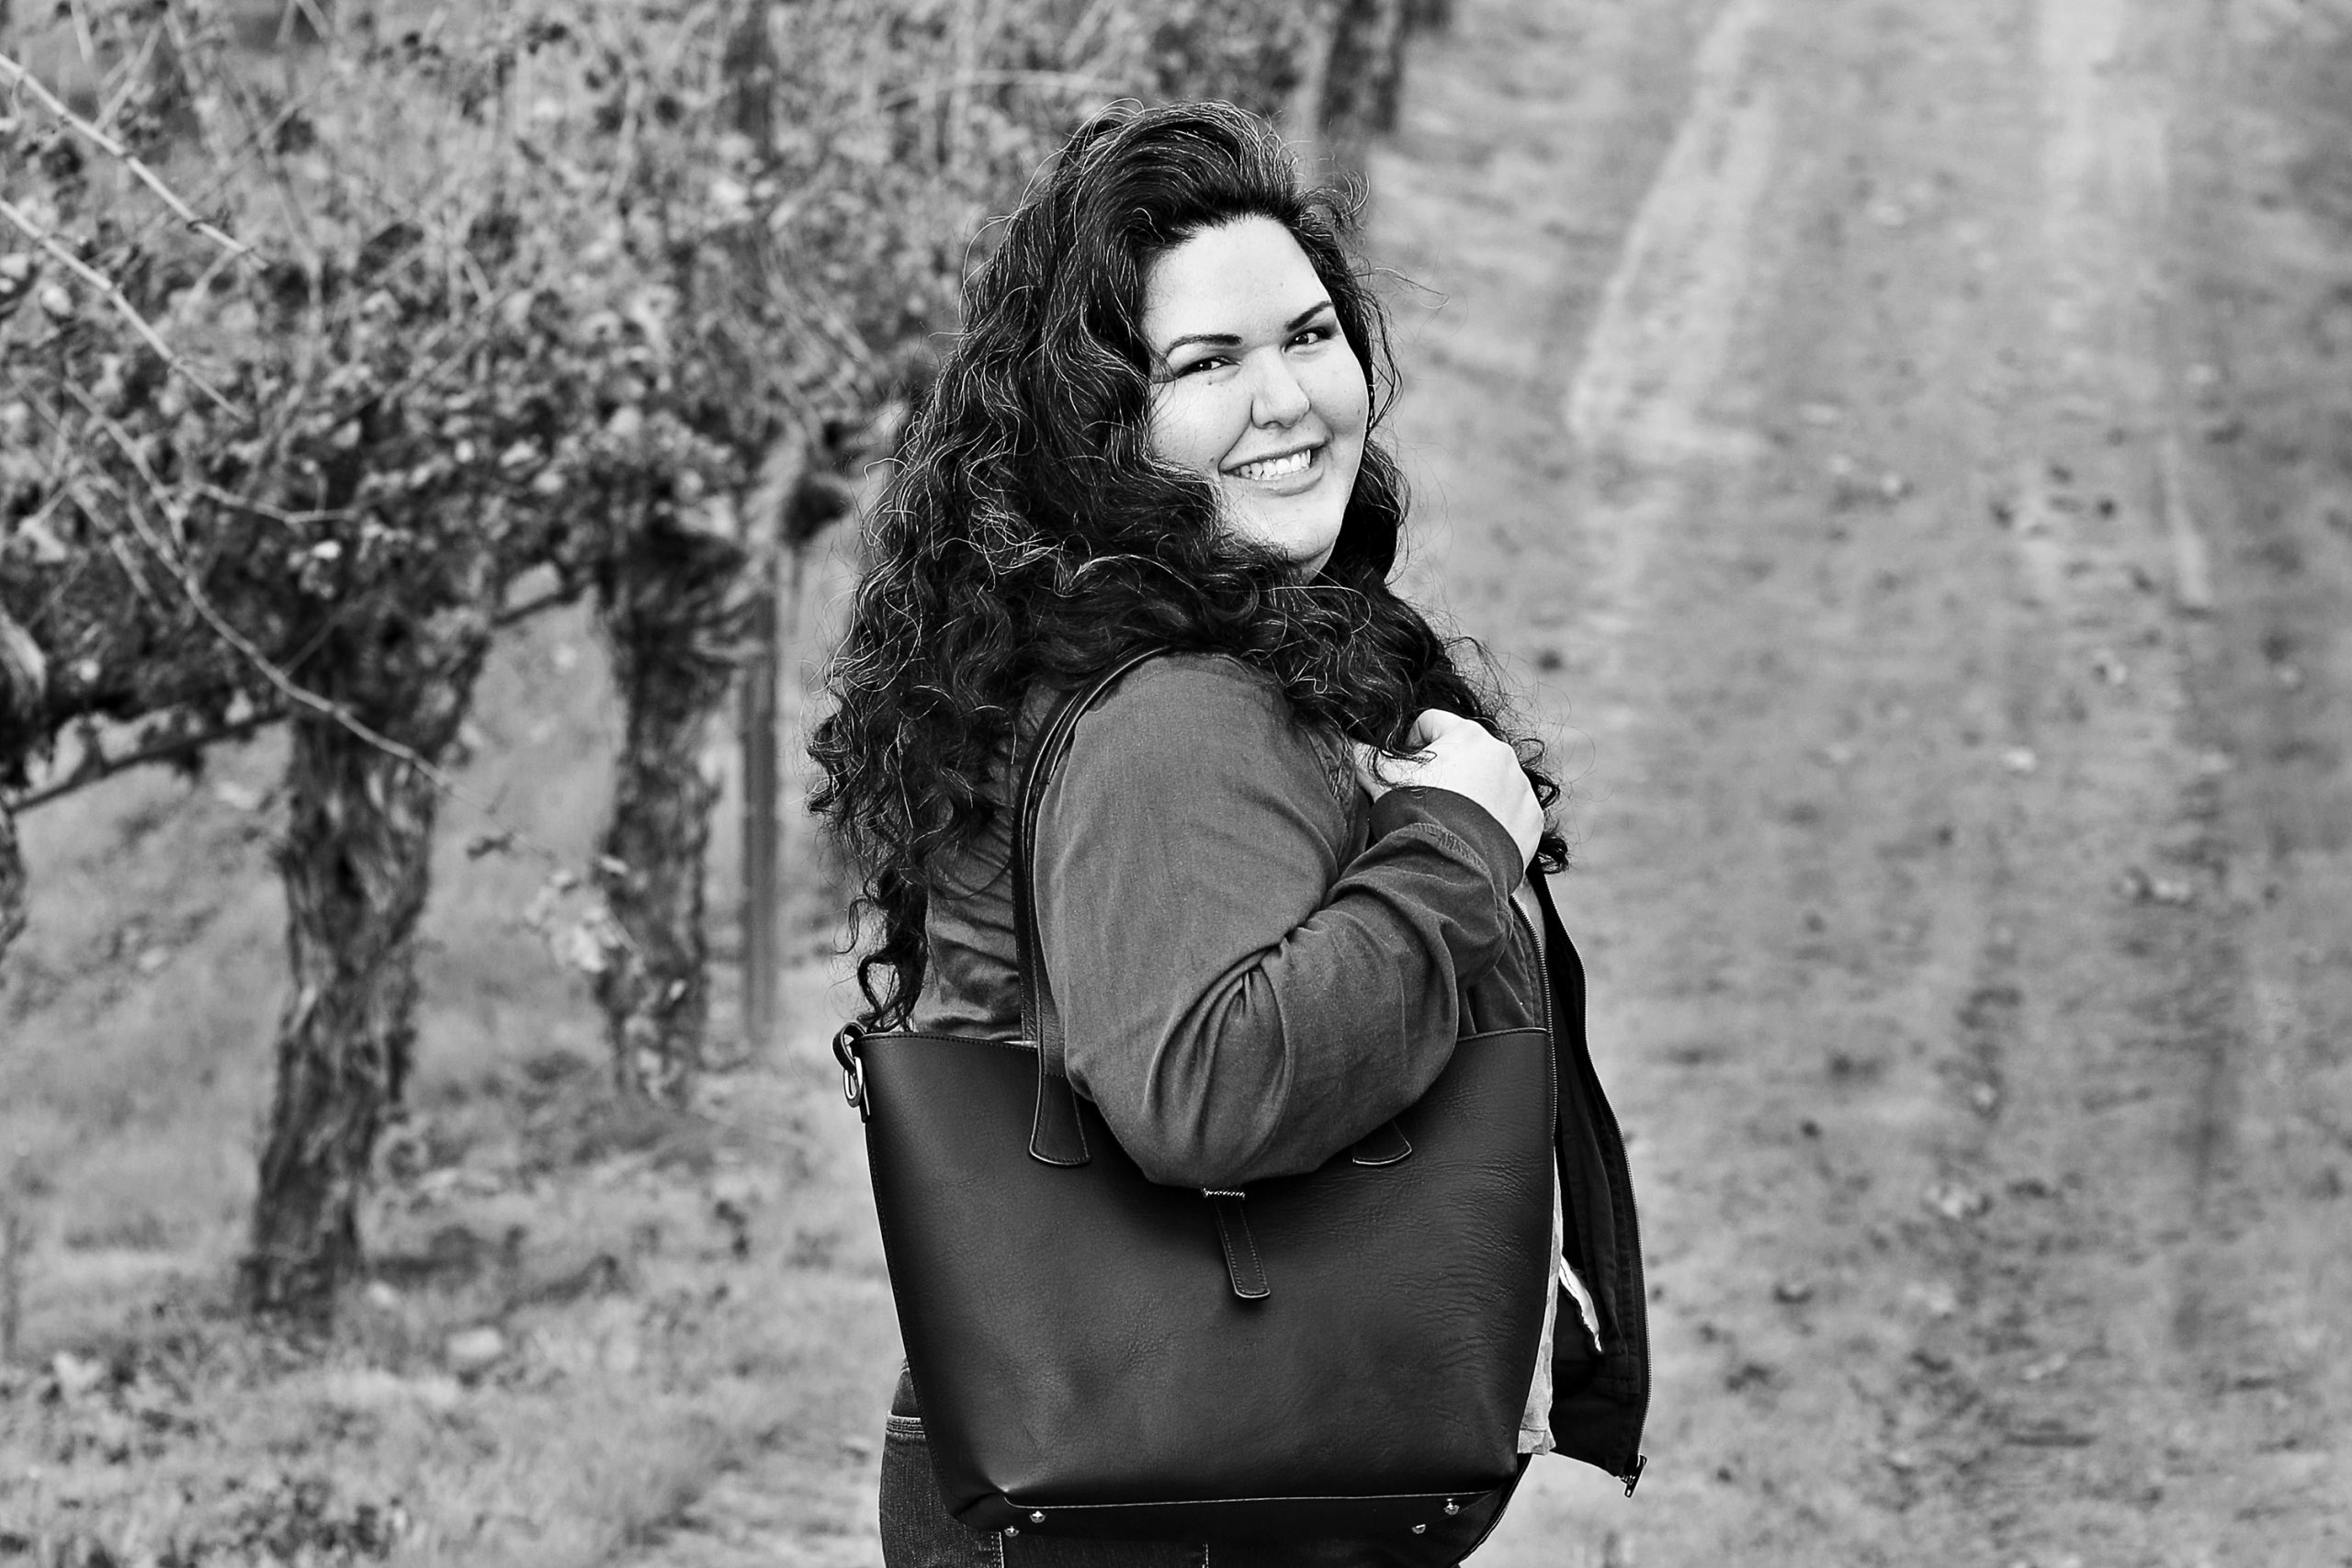 Black and white photo of a woman in a winery, holding a leather purse, and smiling big.